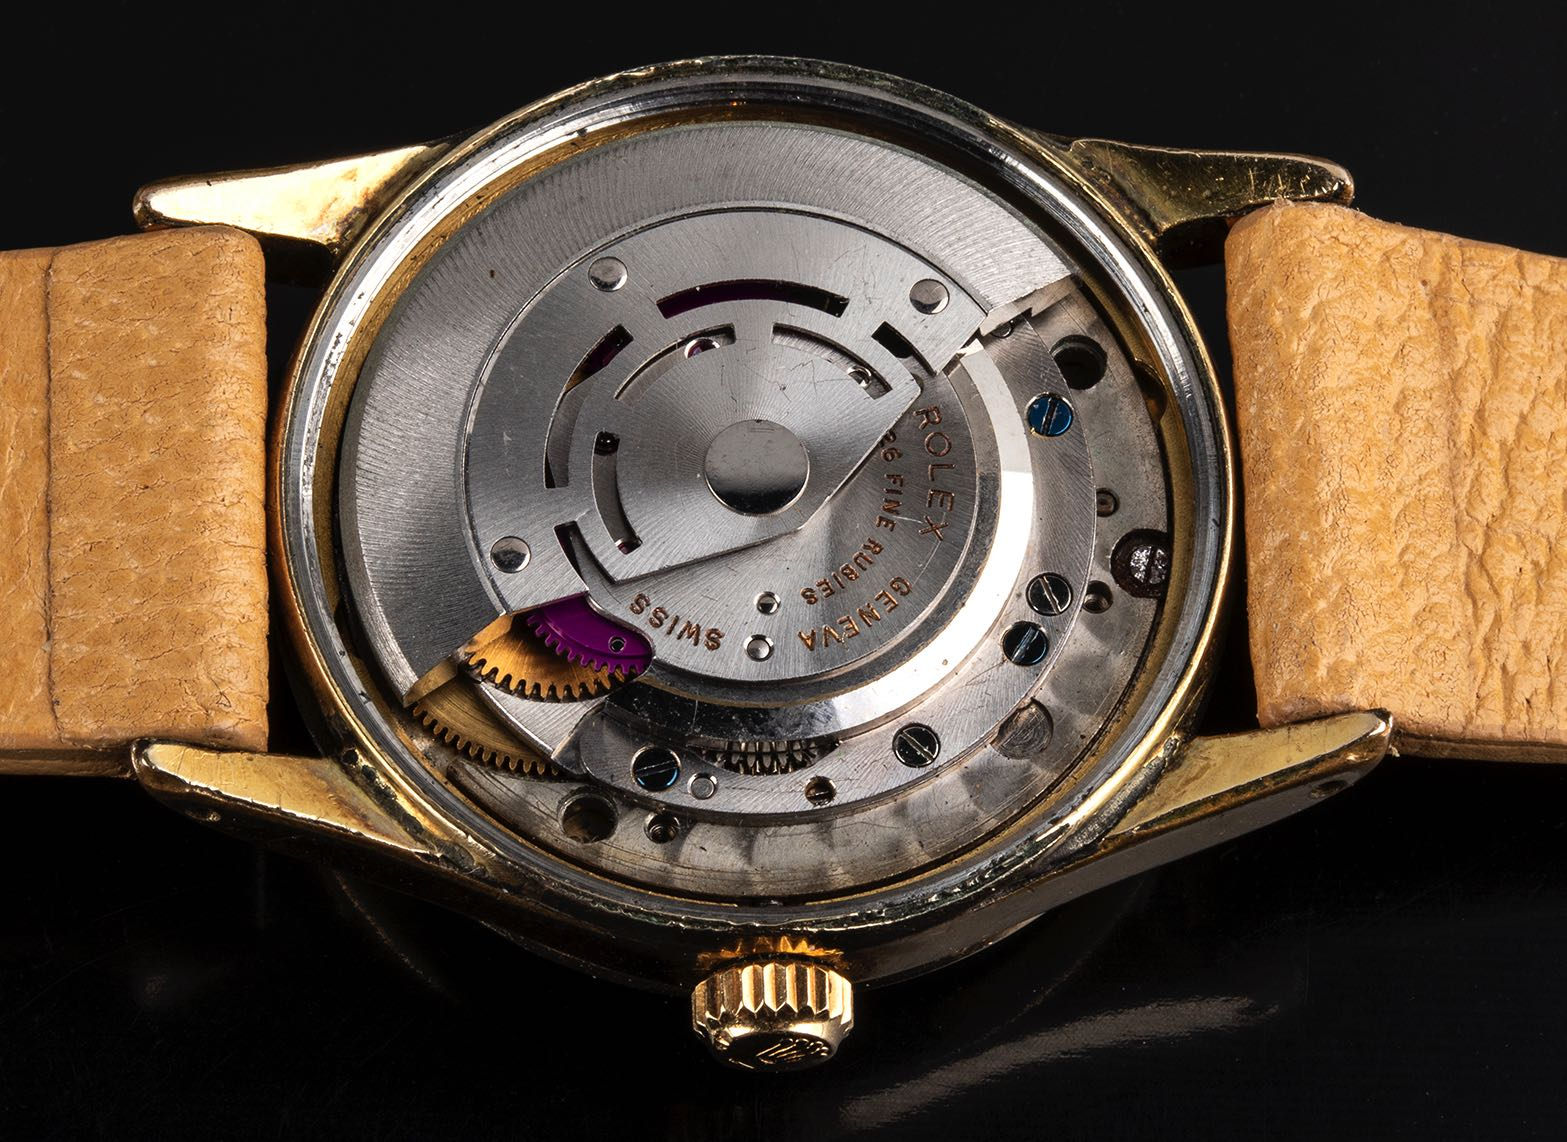 Rolex Explorer guilloche dial ref 5506 Gold filled '1950 - Image 2 of 4